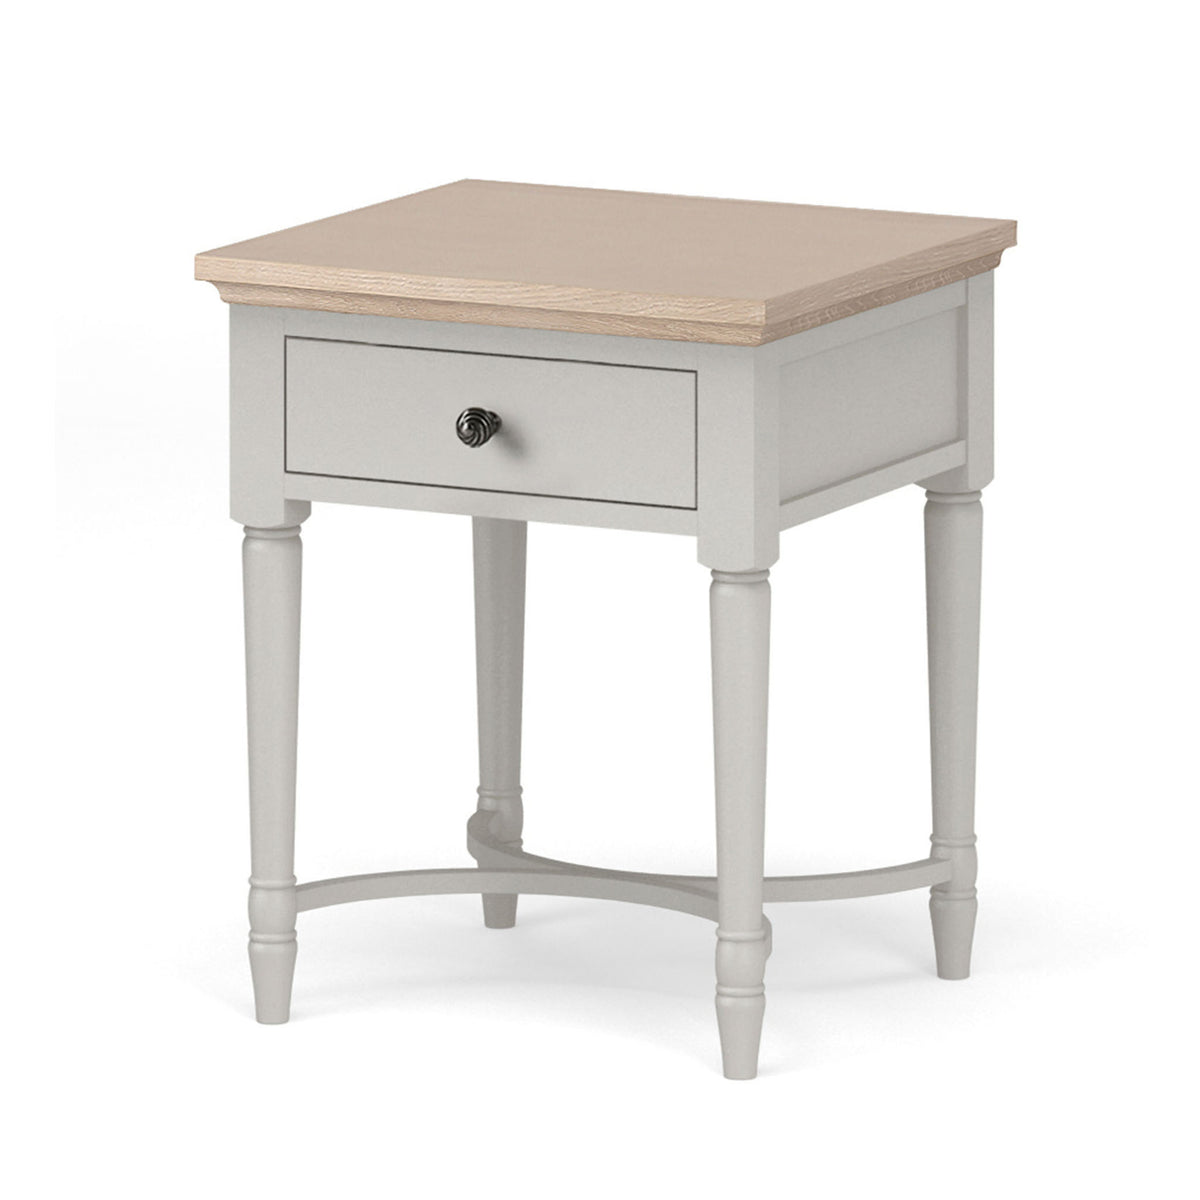 Melrose Grey Lamp Table with storage from Roseland Furniture